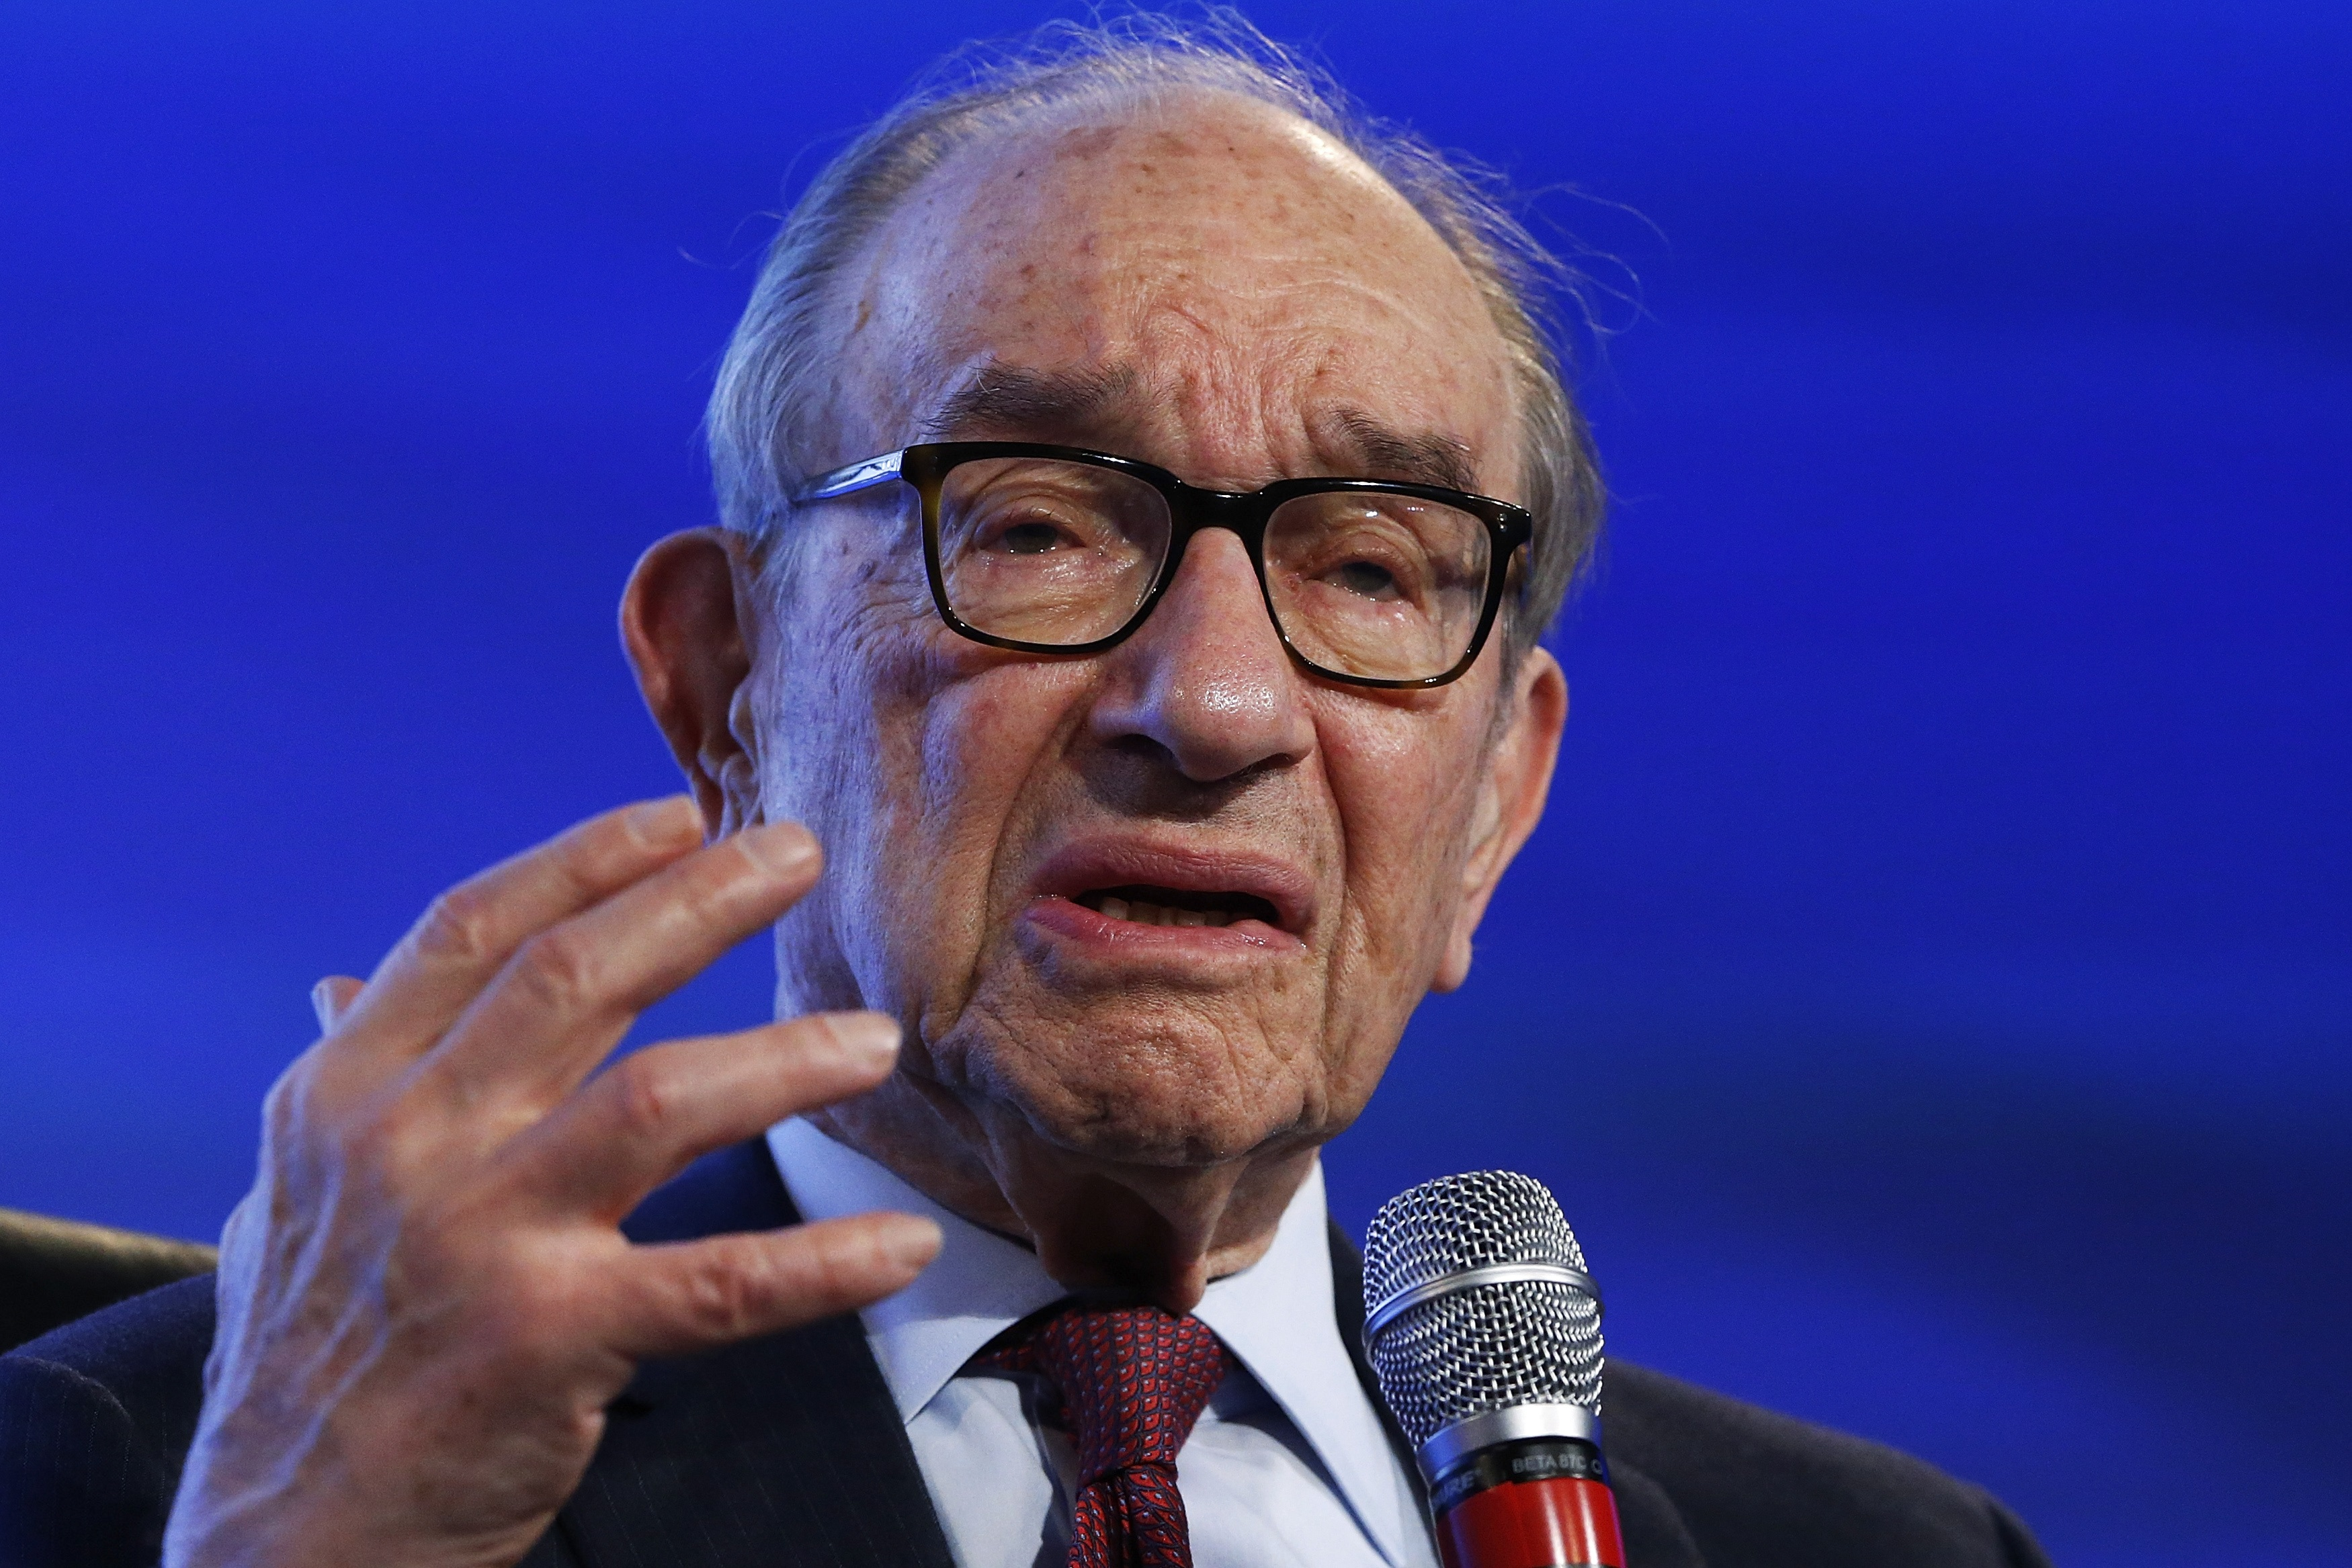 Alan Greenspan: Global Economy Running Toward 'State of Disaster'